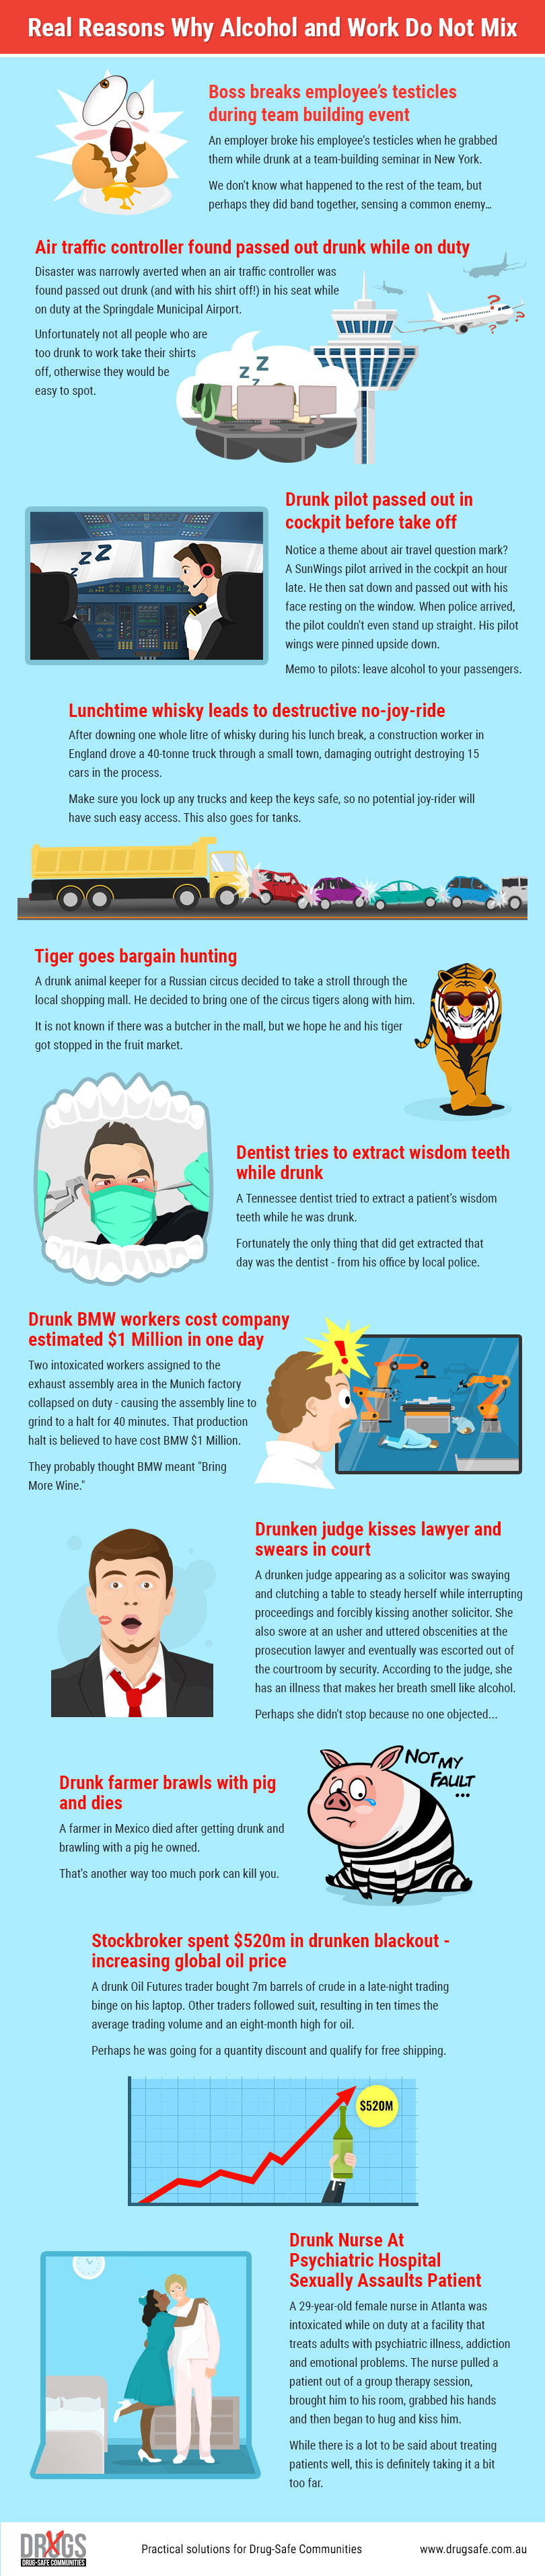 infographic - reasons why alcohol and work do not mix